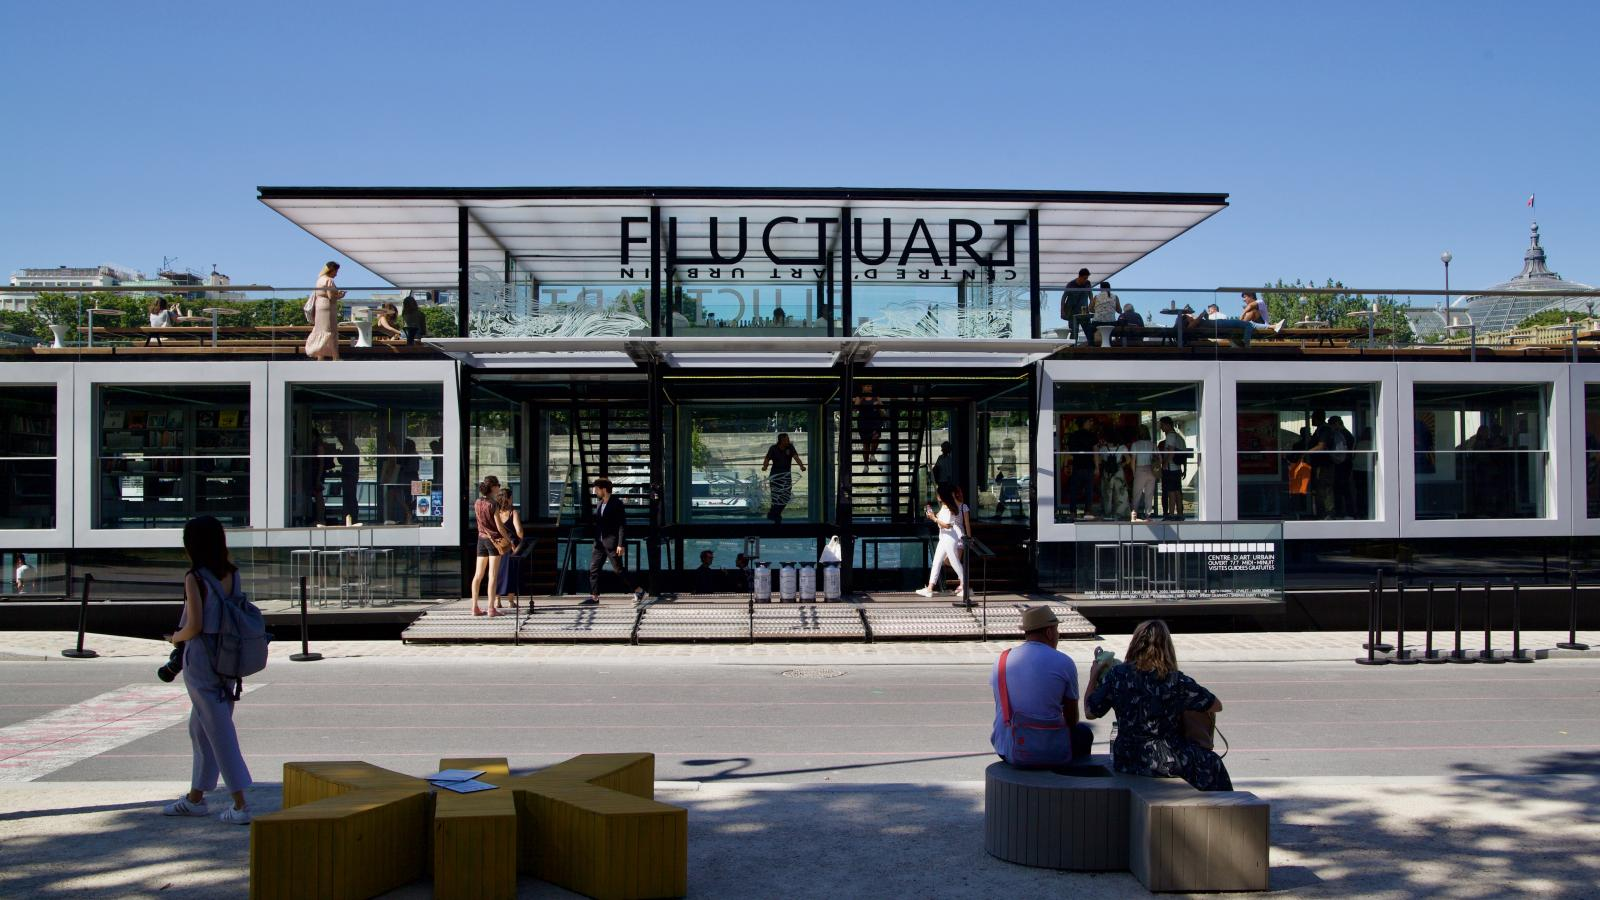 Fluctuart; the new Parisian centre dedicated to urban art